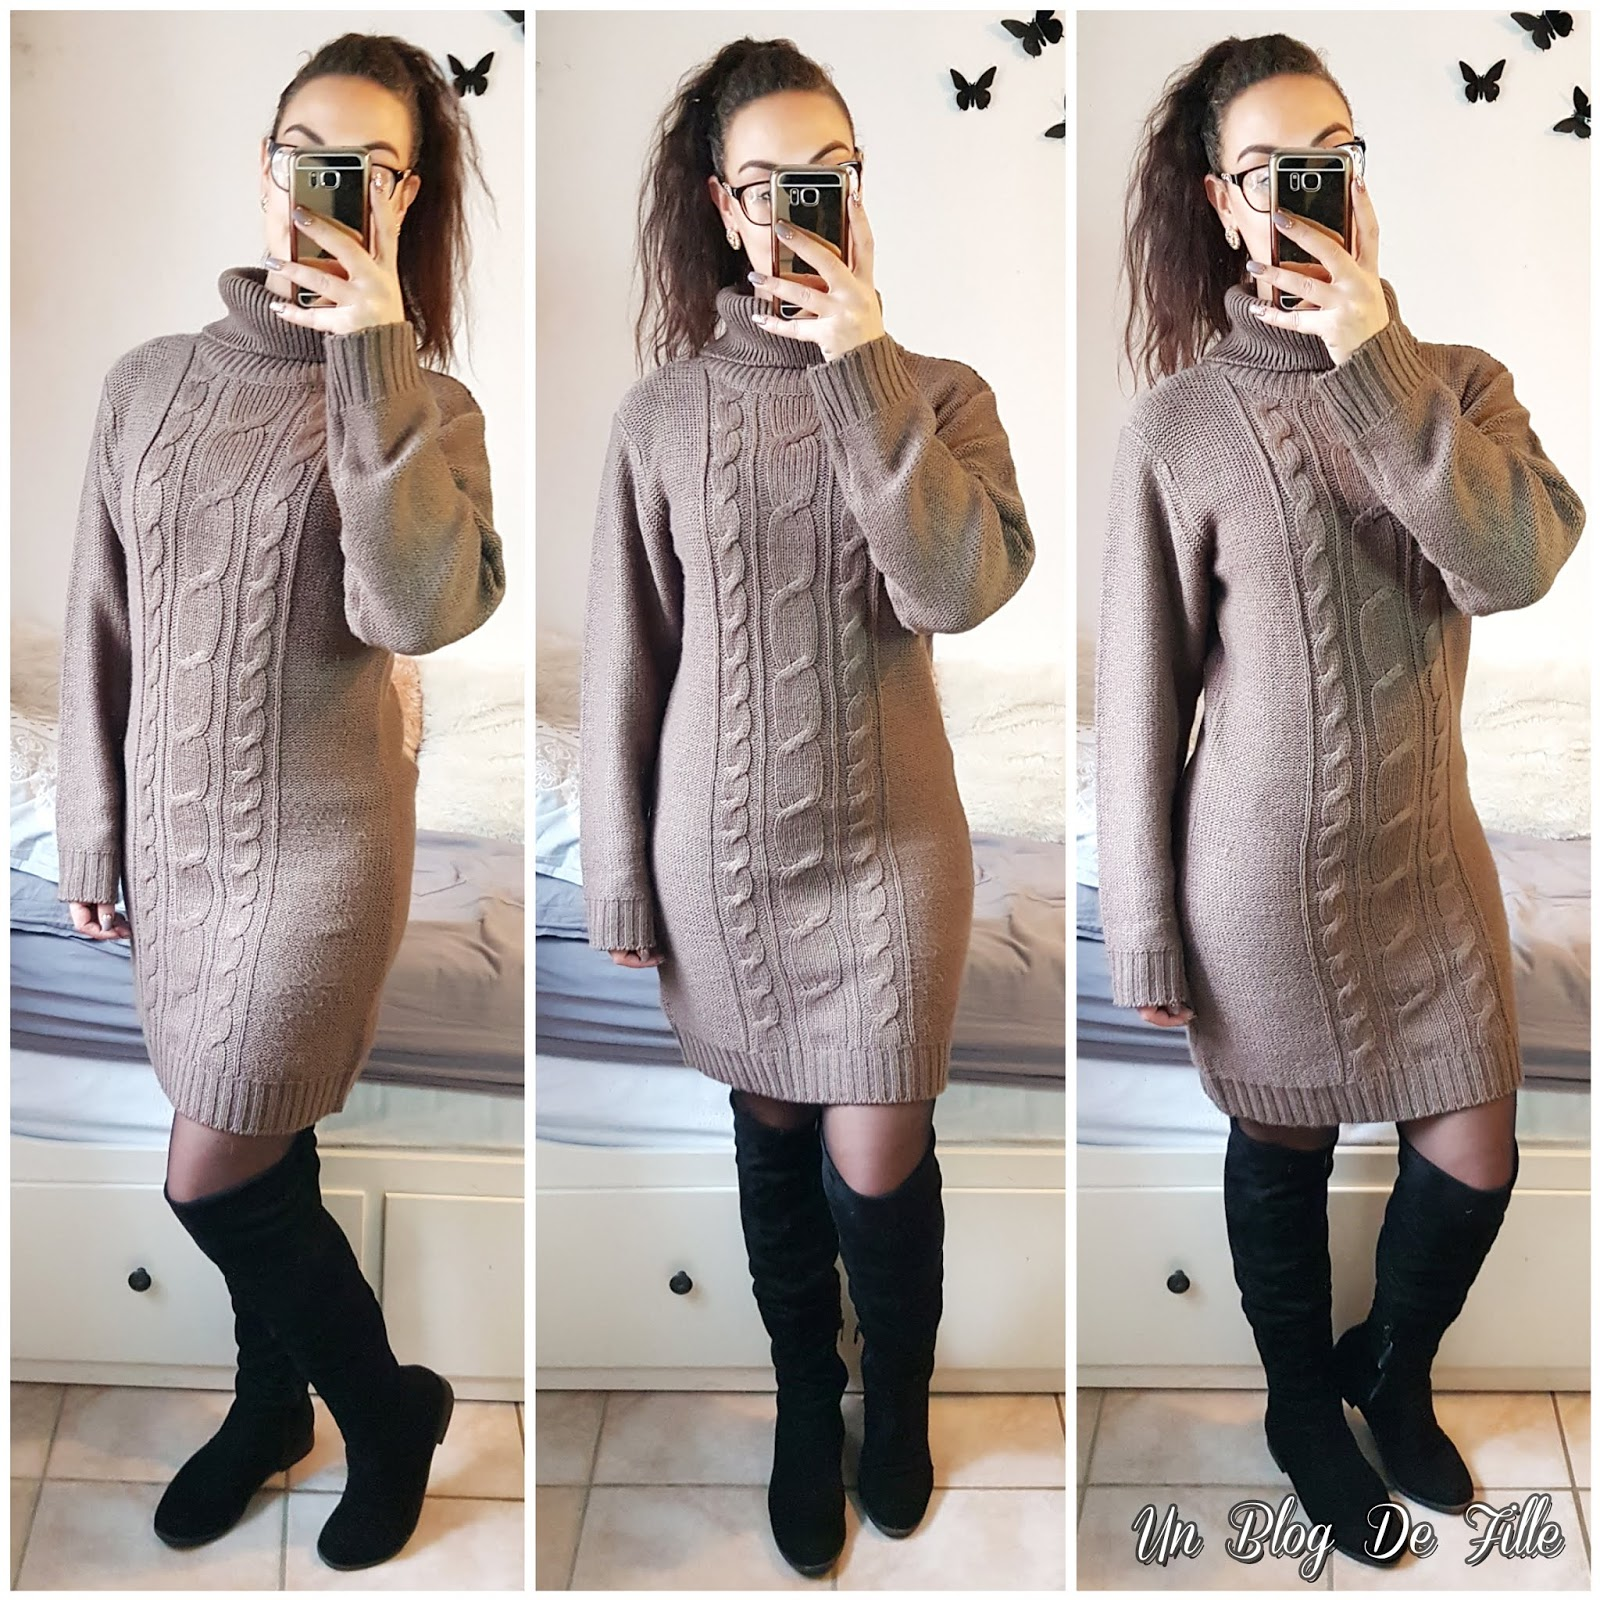 http://www.unblogdefille.fr/2019/01/look-dhiver-robe-pull-et-cuissardes.html